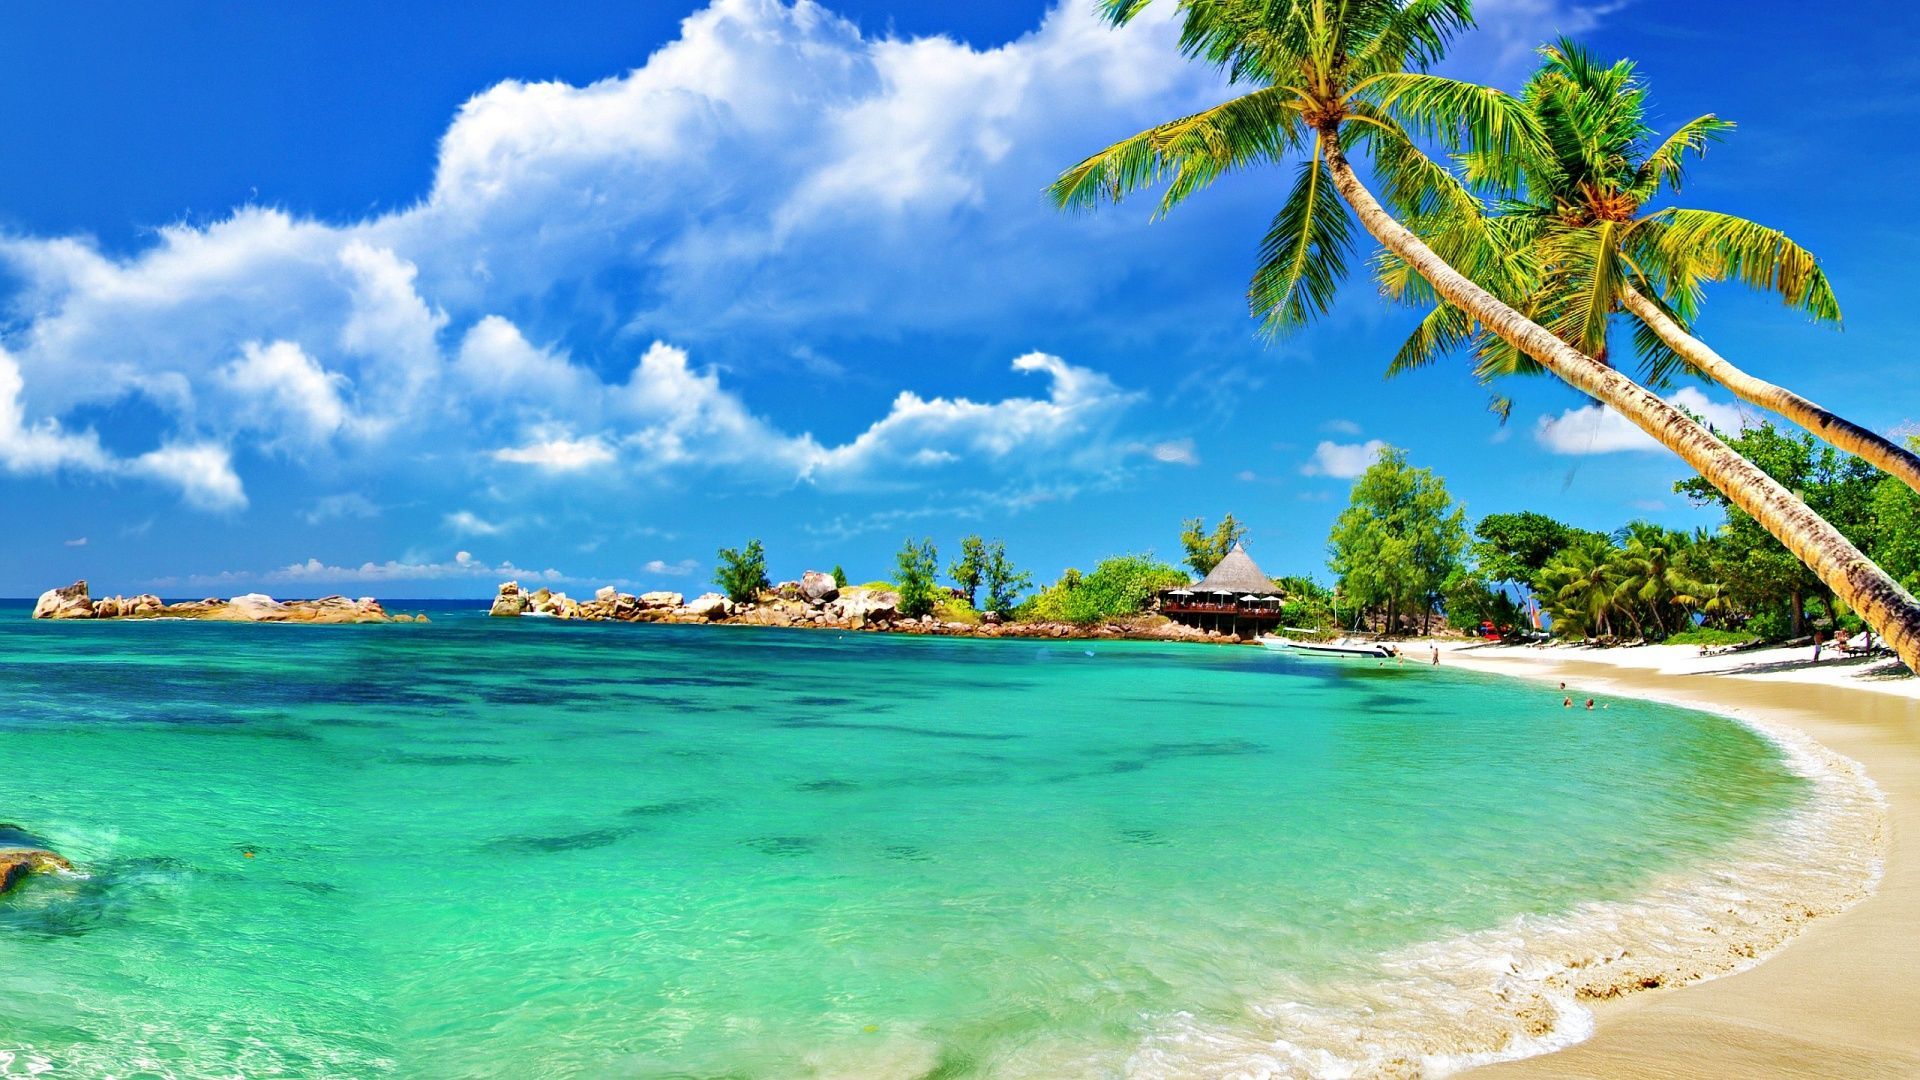 Tropical Pictures Beach Tropical Wallpaper Wallpapers 1920x1080 Mrwallpaper Com Beach Wallpaper Andaman And Nicobar Islands Beach Background